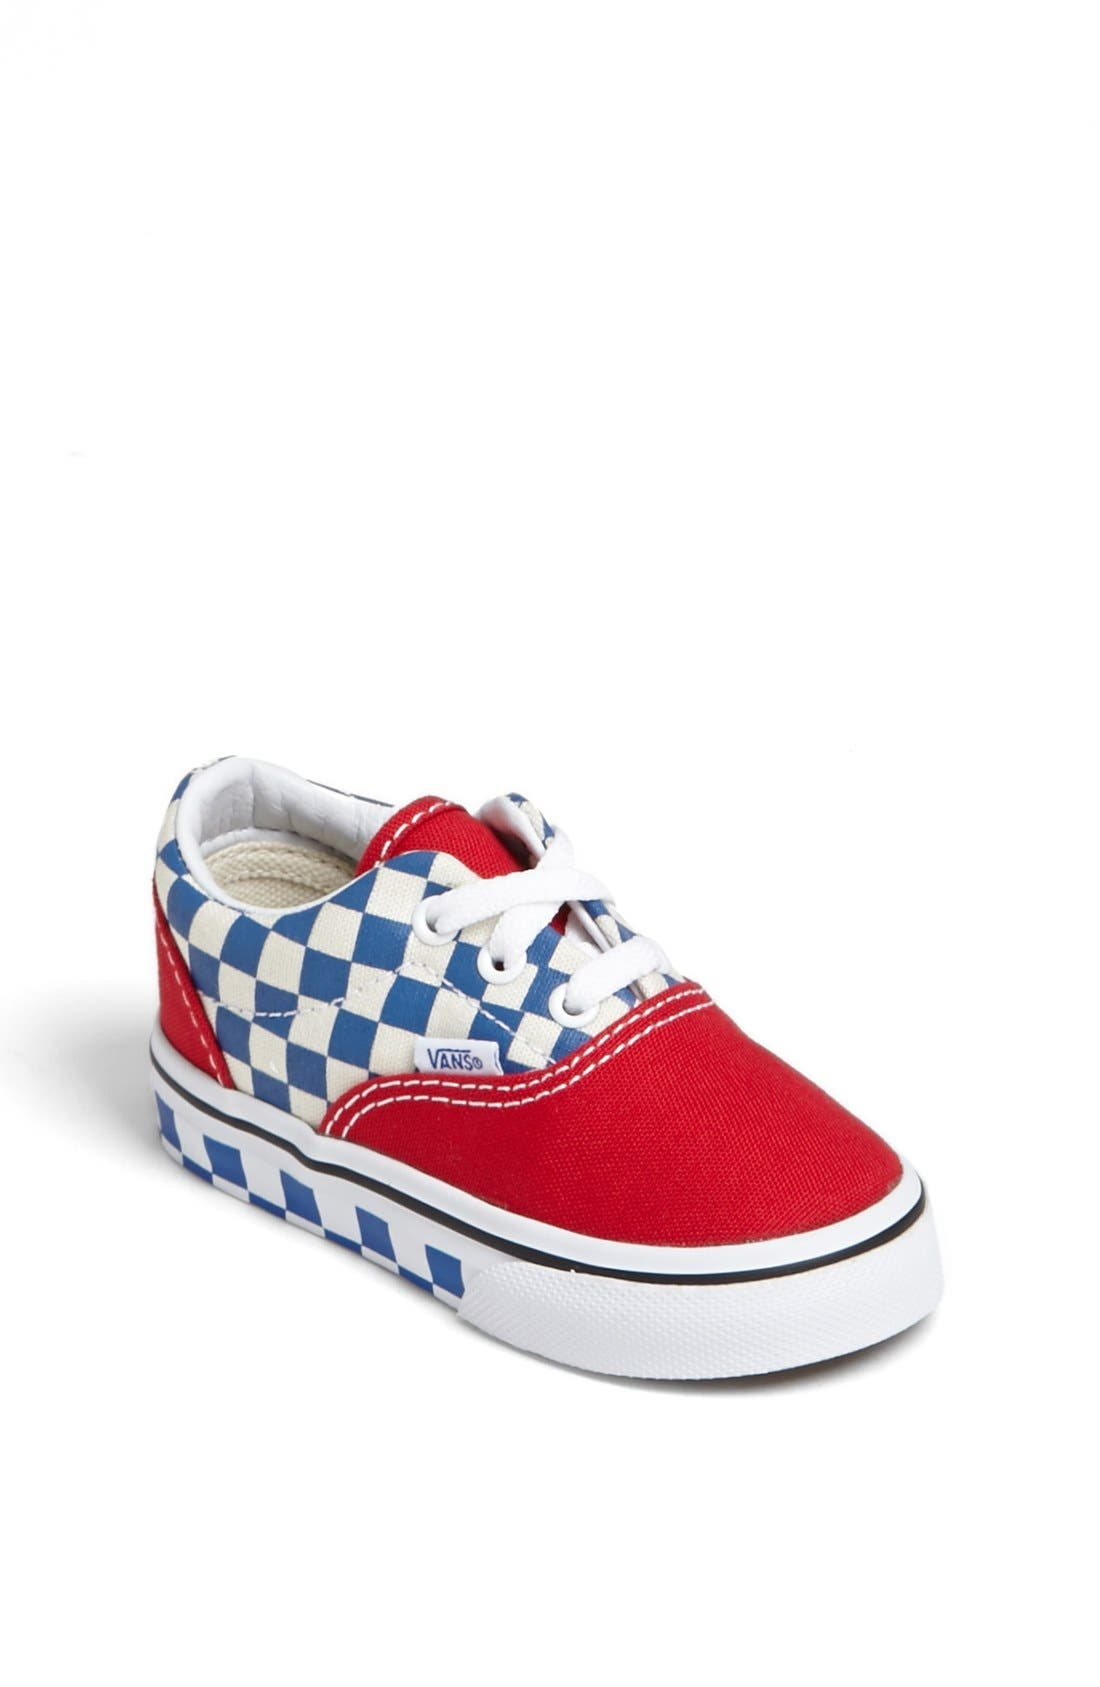 Main Image - Vans 'Era - Checkerboard' Sneaker (Baby, Walker & Toddler)